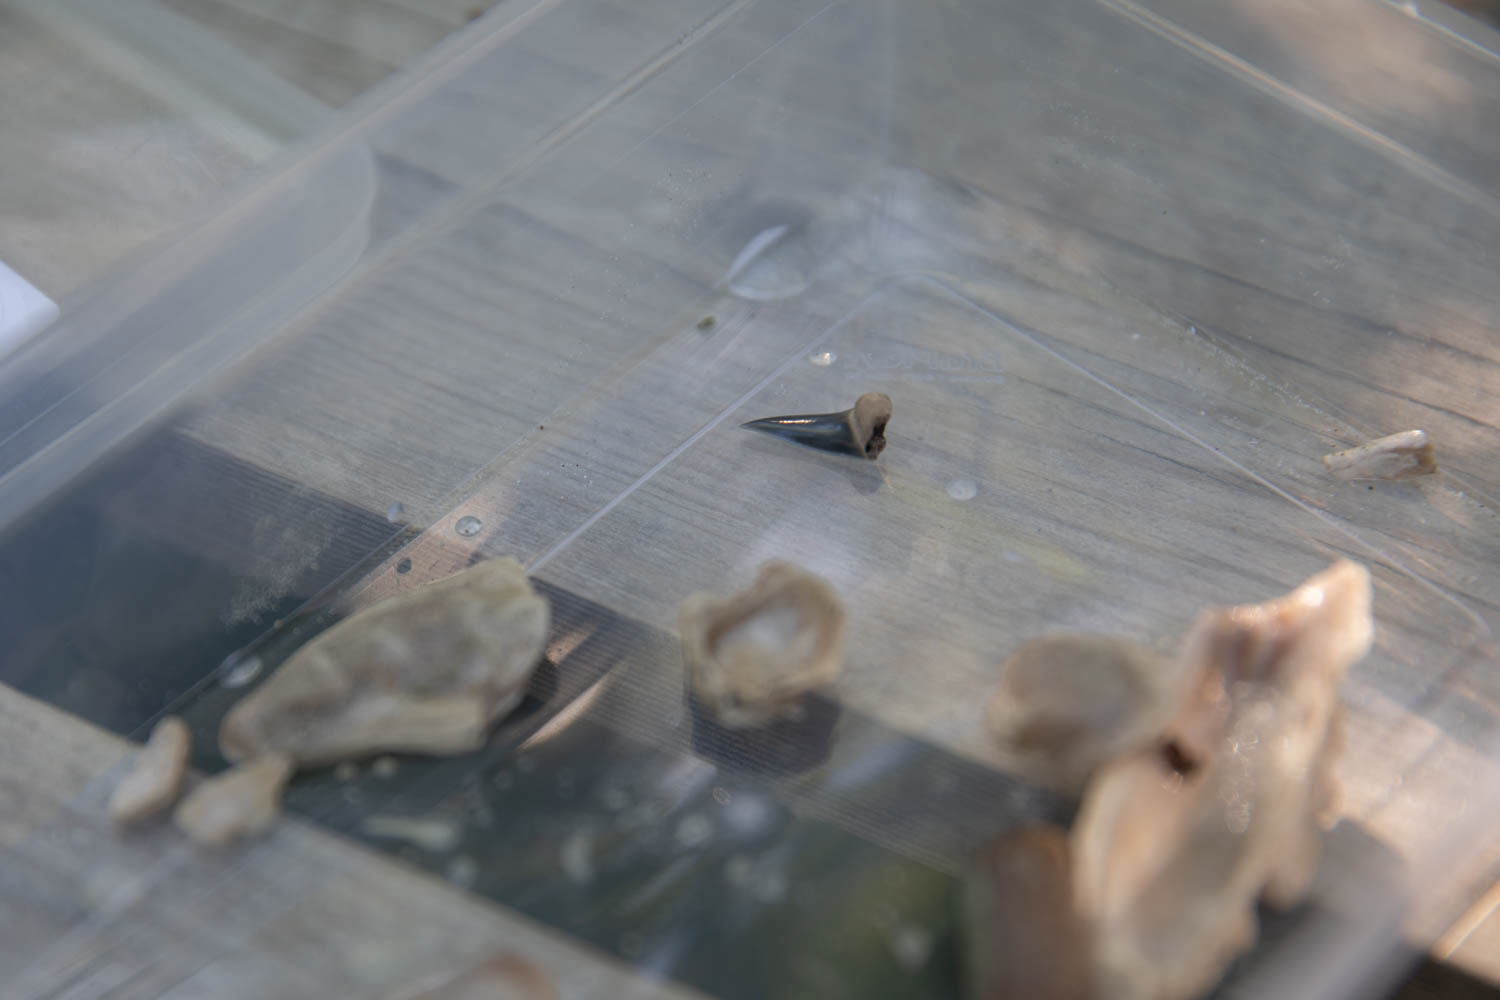 A Shark tooth that was found during the fossil search